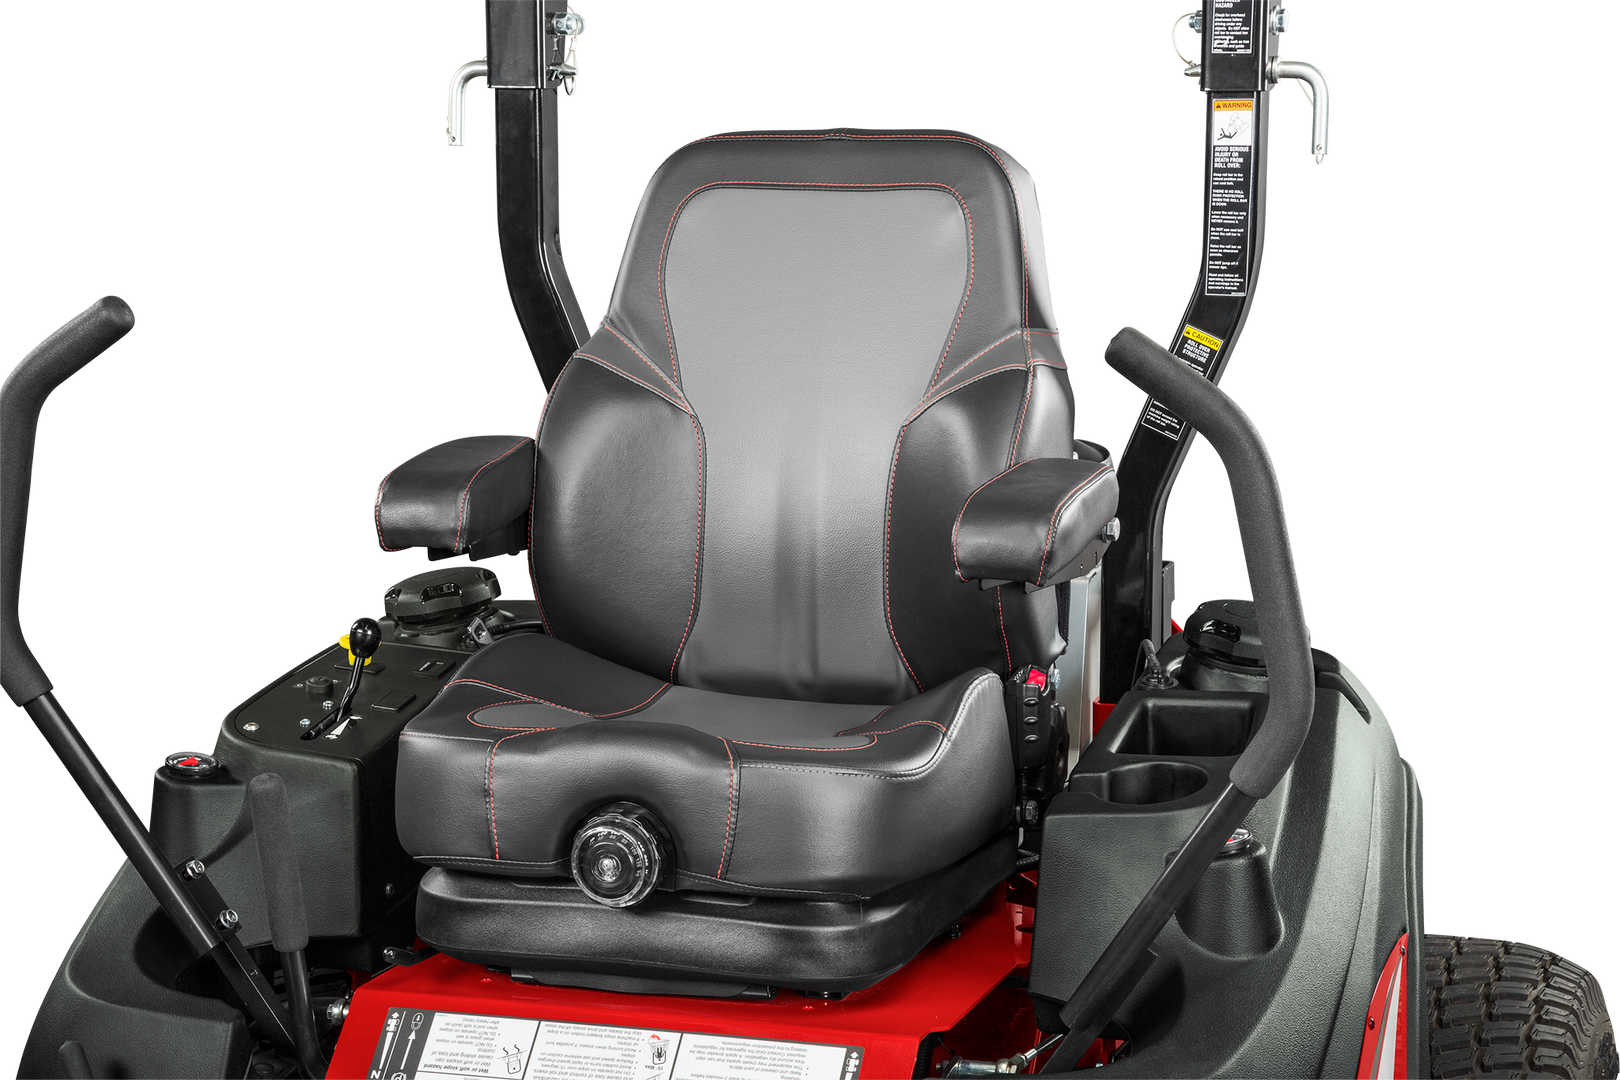 5901845_FER_ISX2200_2861_Seat.png